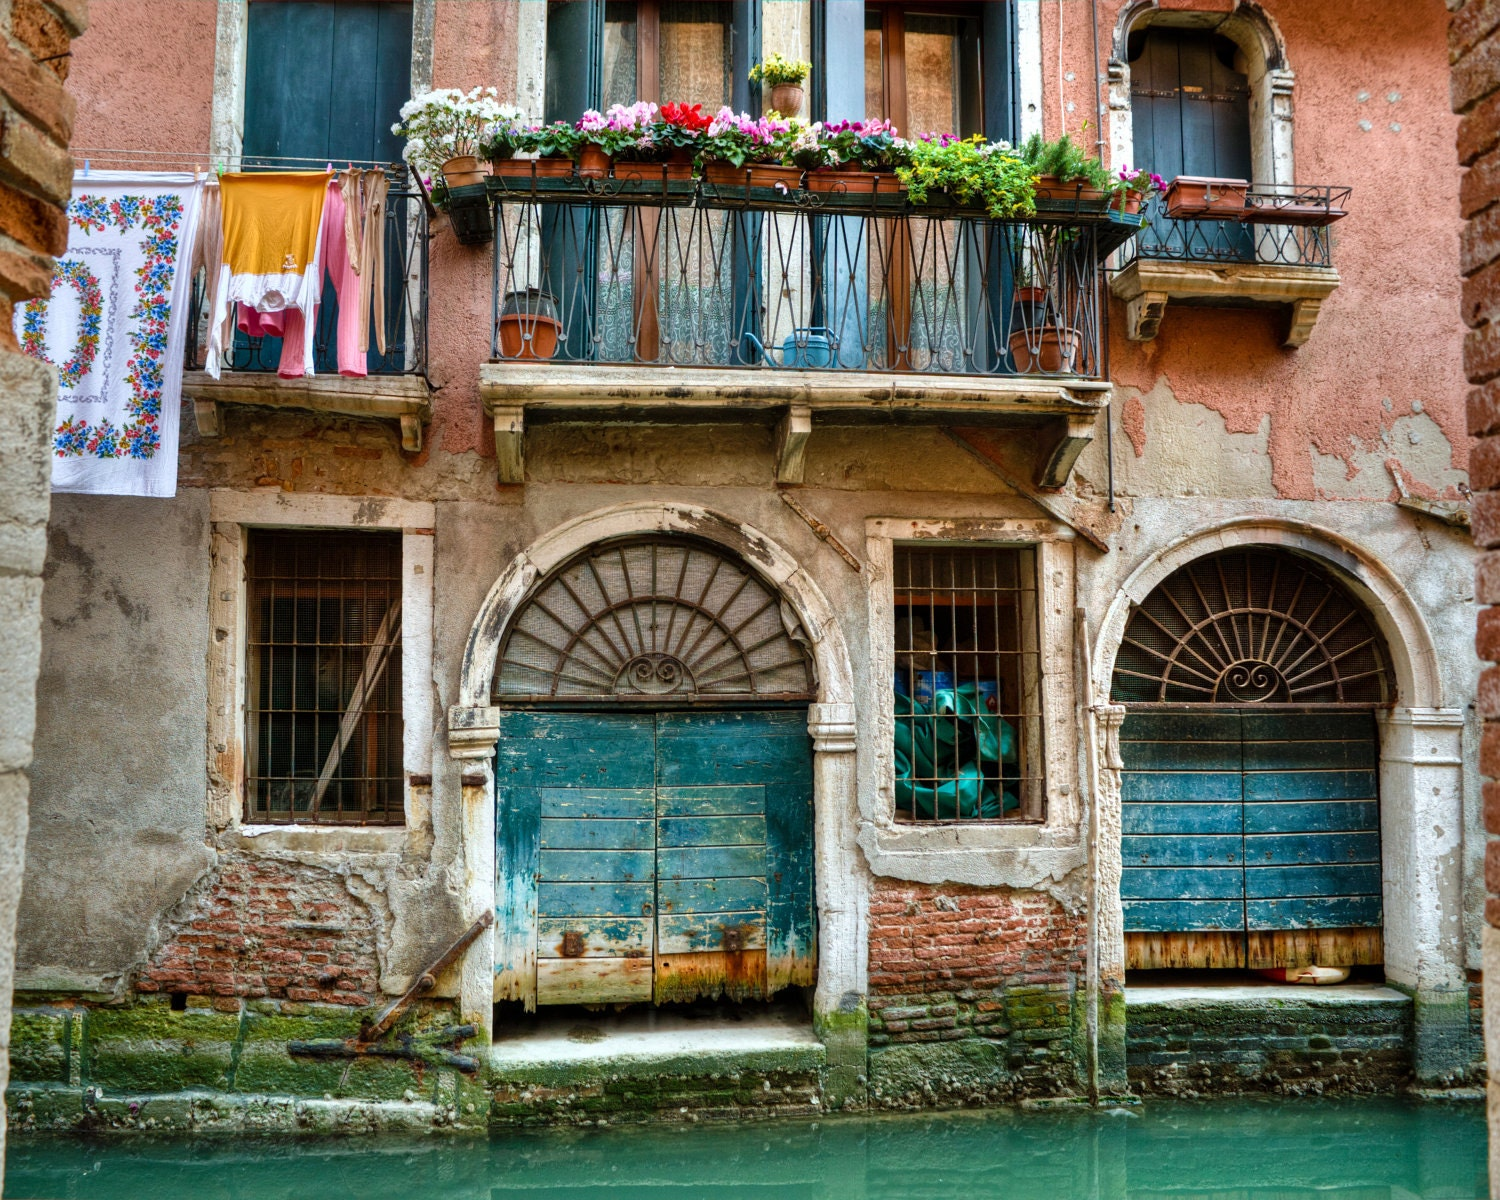 Venice photograph italy photo hanging laundry balcony canal for Italian balcony